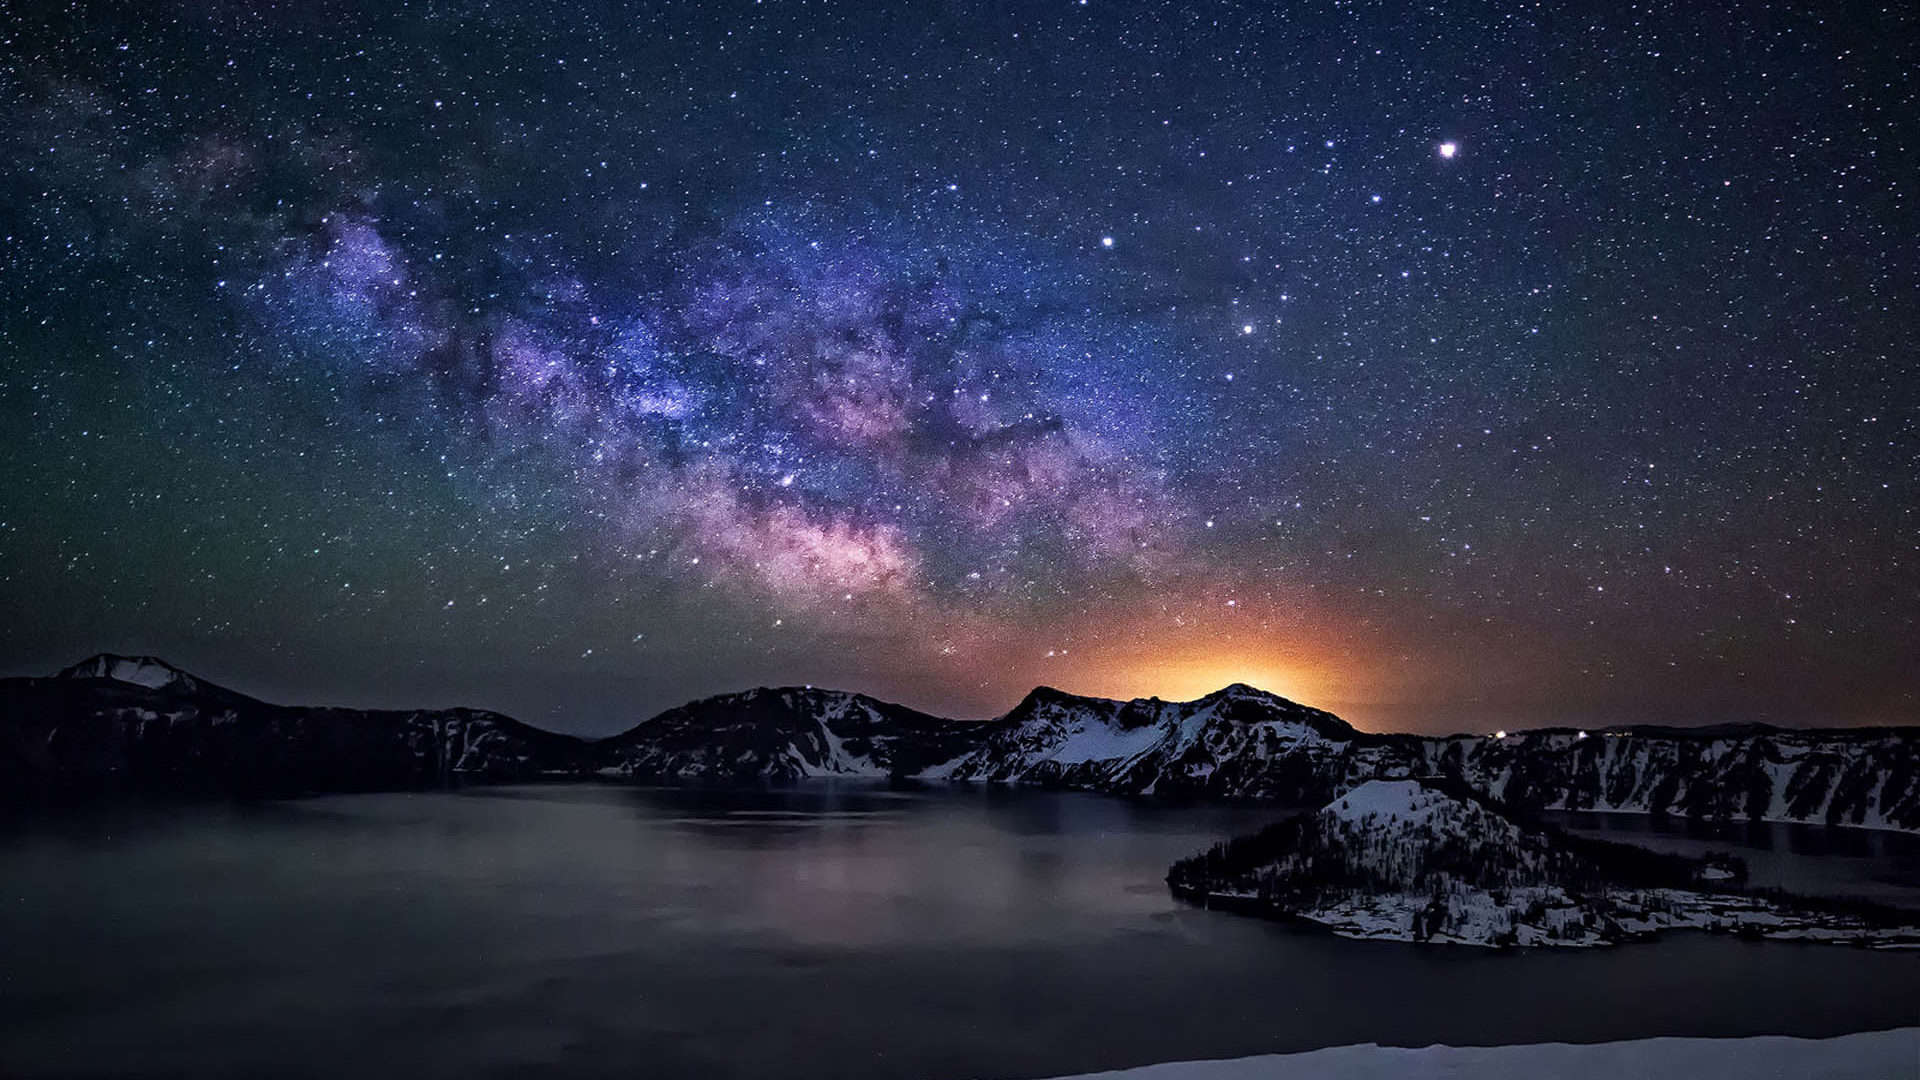 Fall Wallpaper Iphone 4 Crater Lake Night Sky With Star Milkyway Desktop Wallpaper